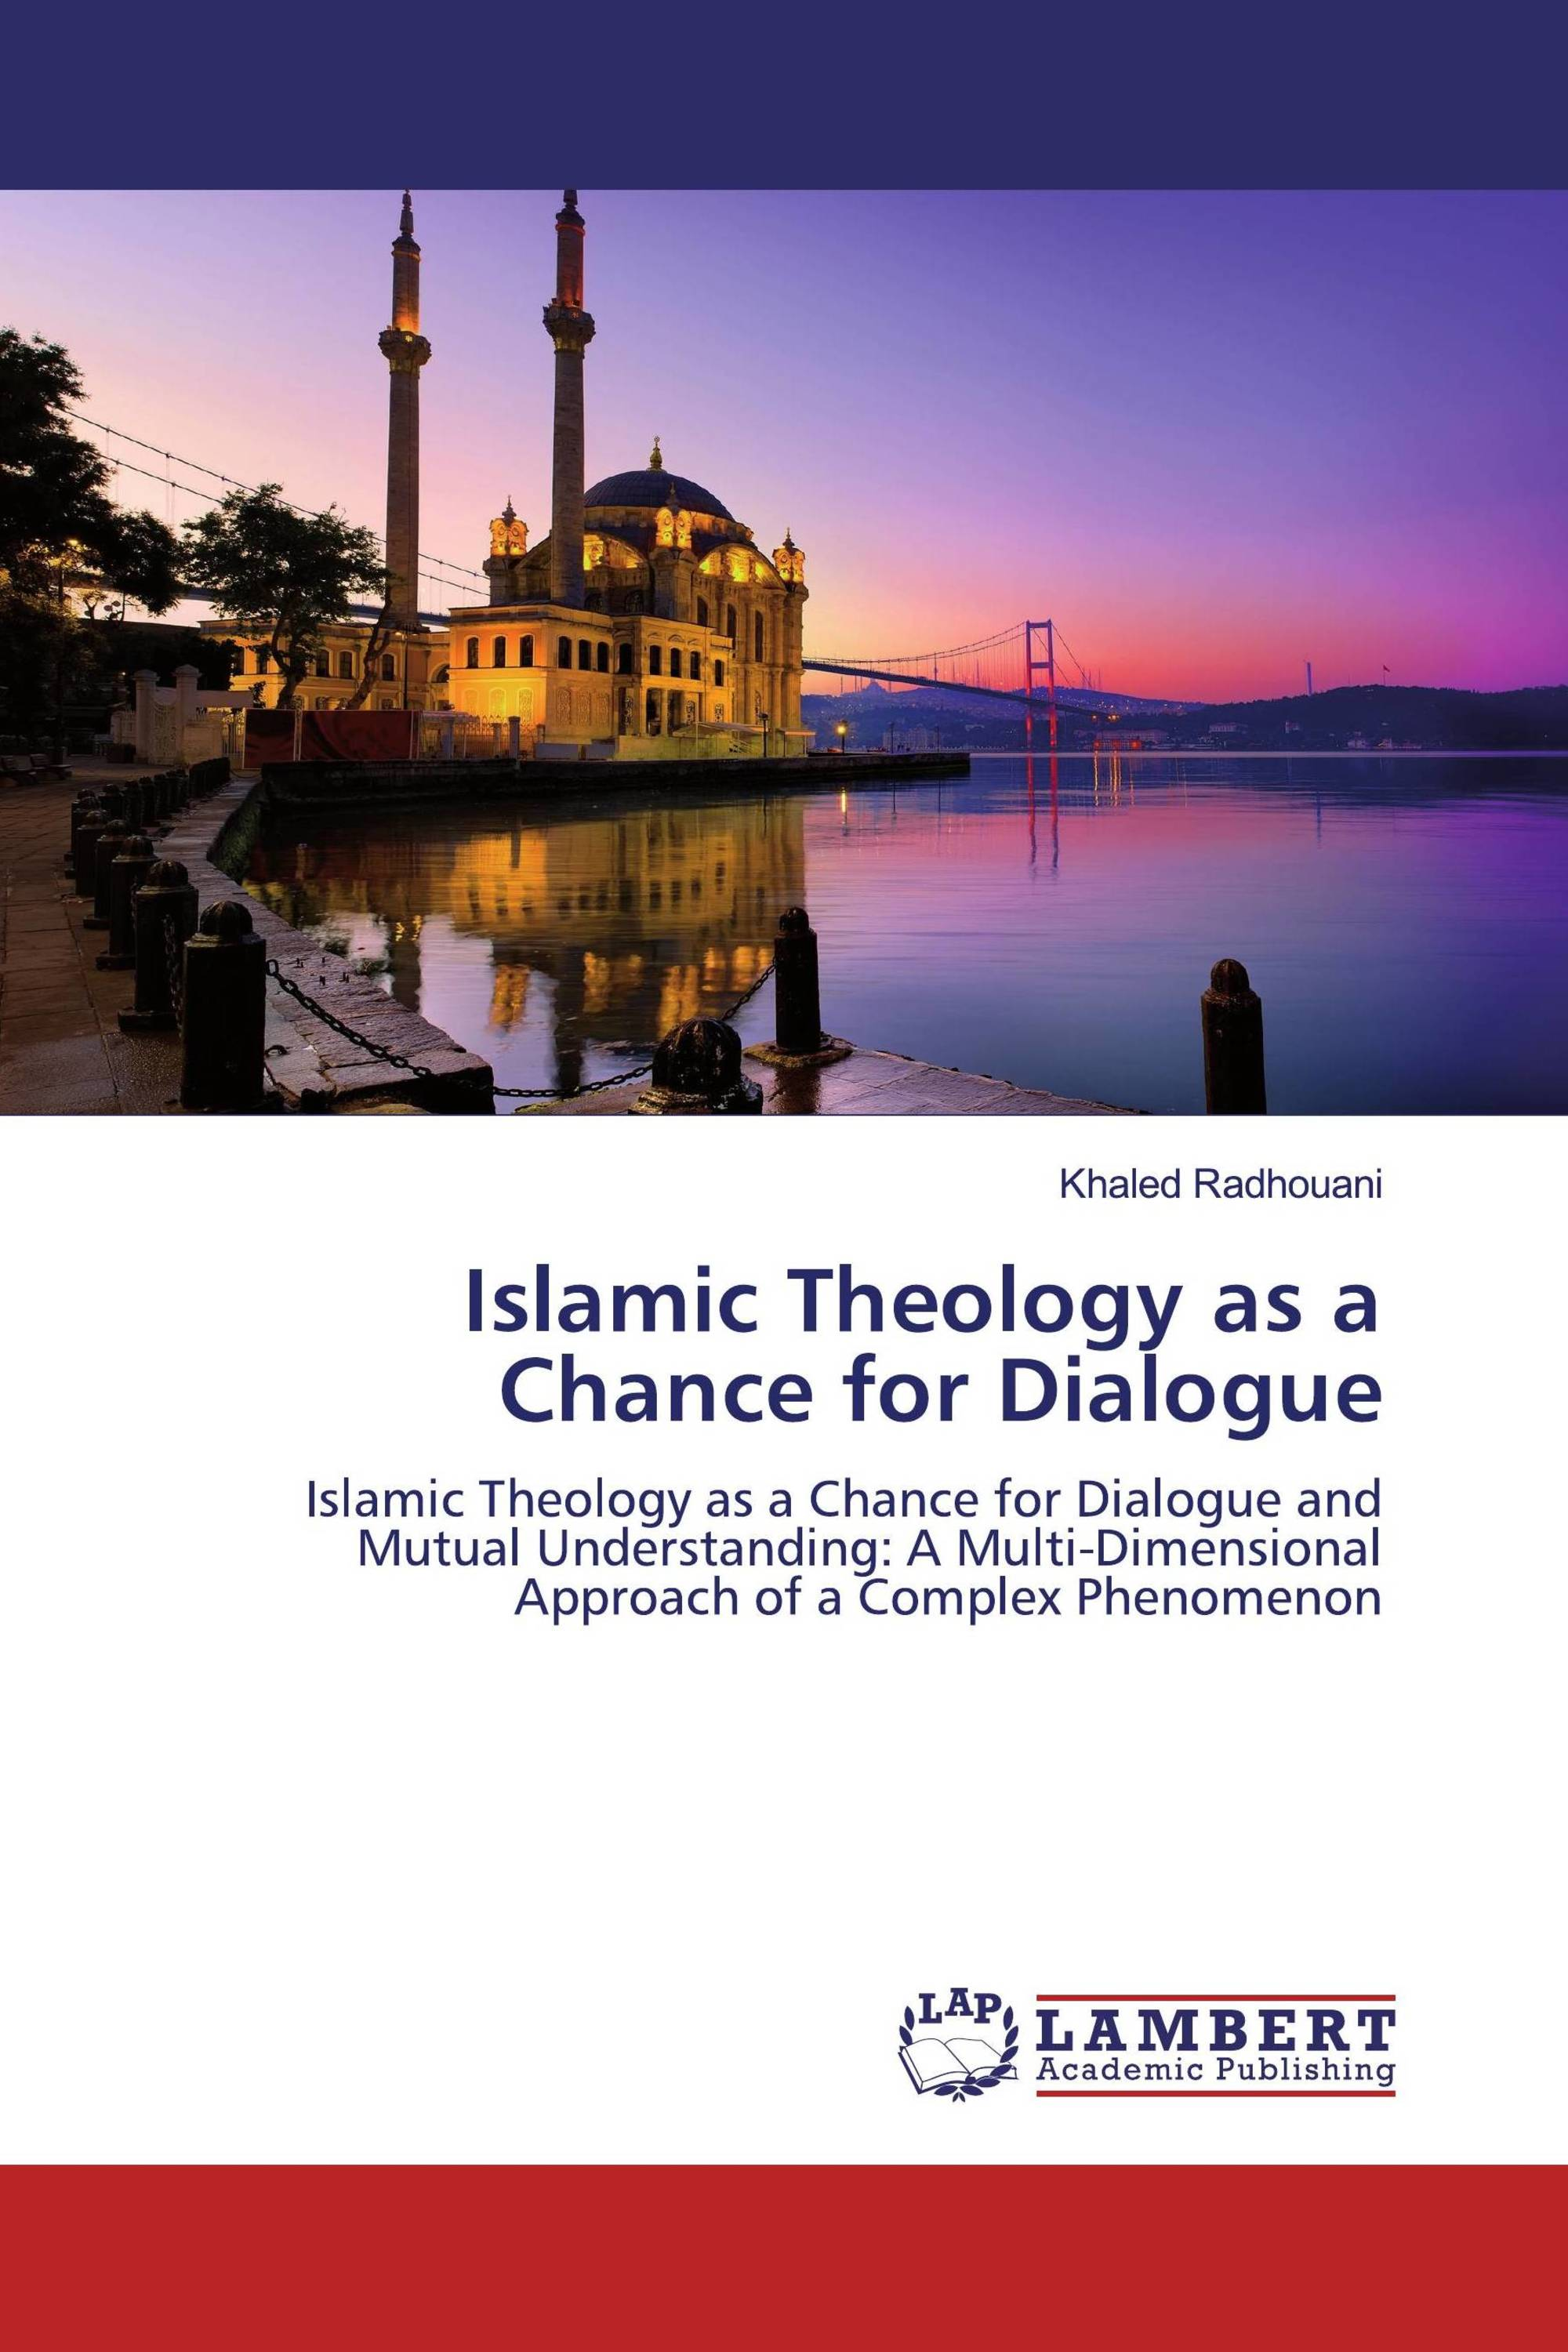 Islamic Theology as a Chance for Dialogue